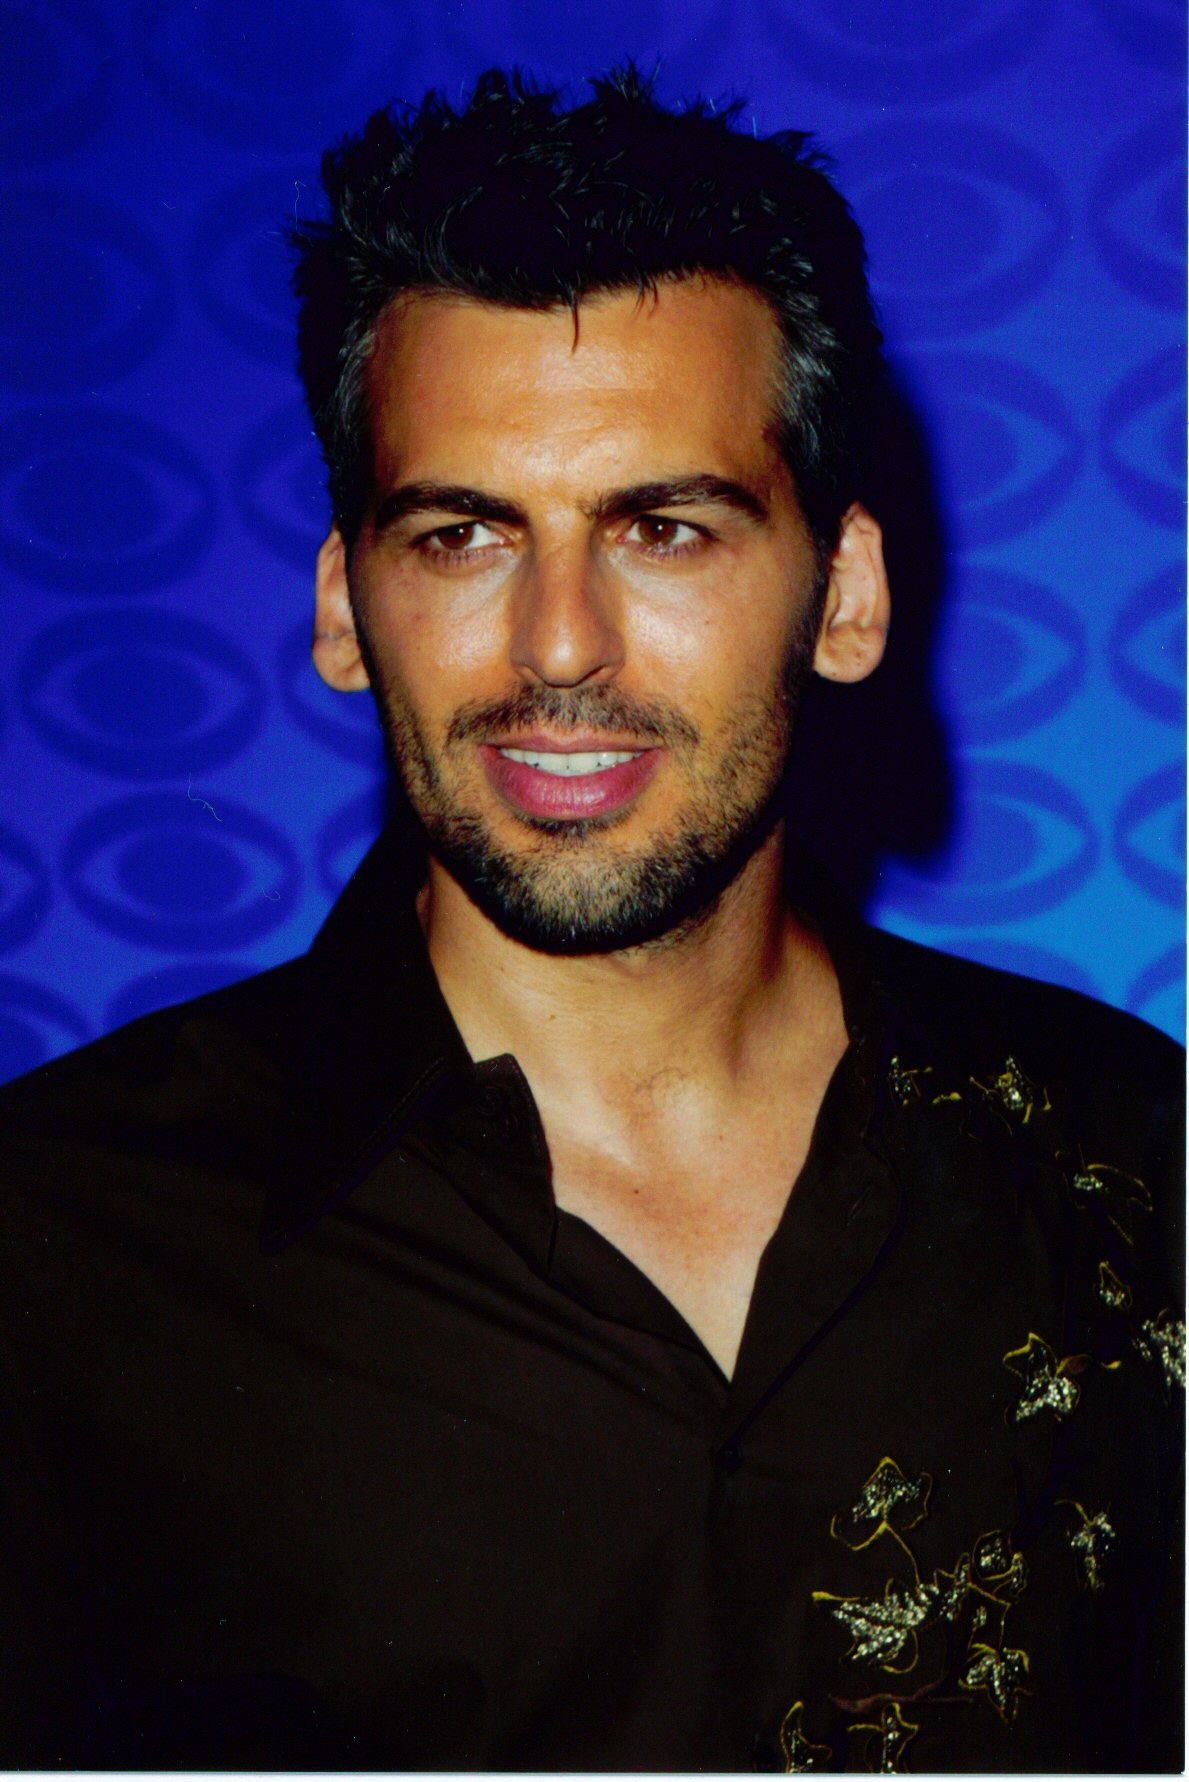 Poze Oded Fehr - Actor - Poza 12 din 20 - CineMagia.ro